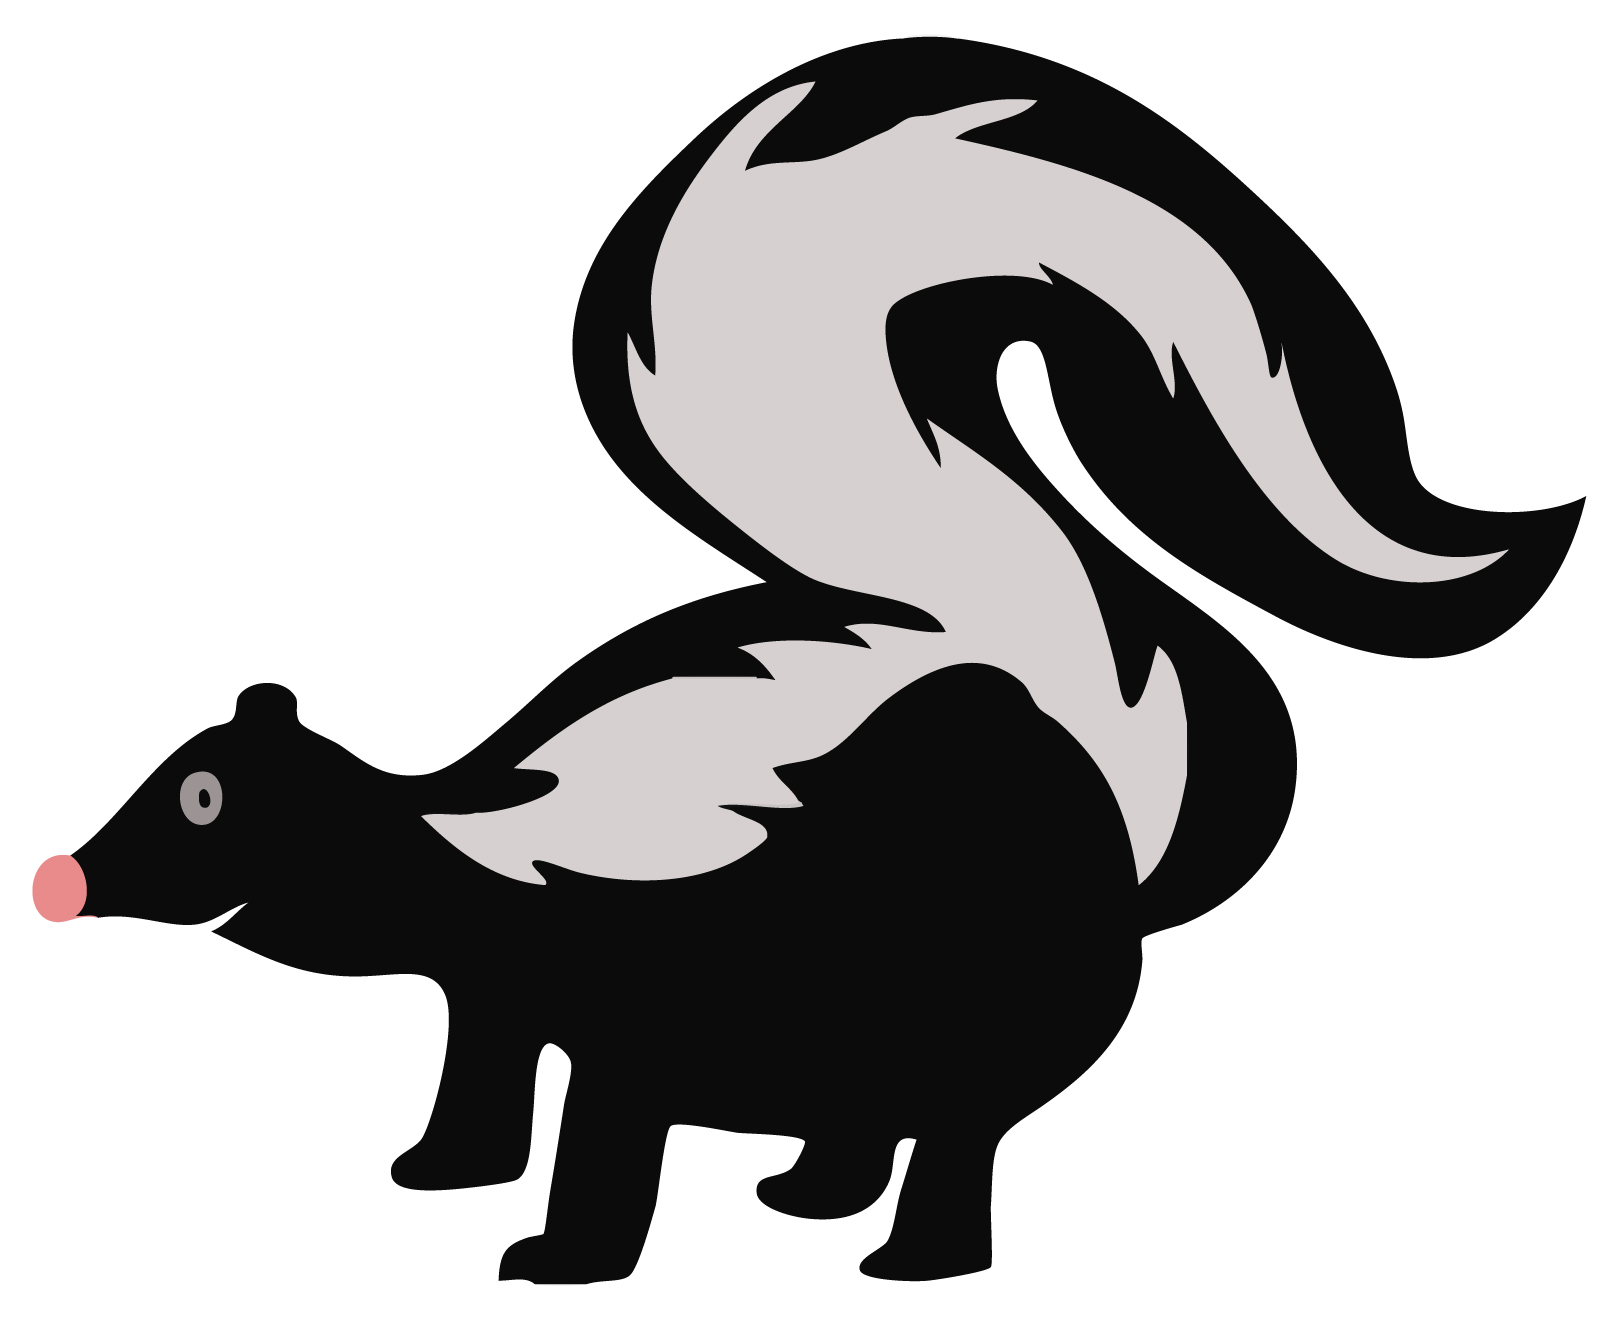 Cute valentine skunk clipart black and white png transparent library Cute valentine skunk clipart black and white - ClipartFest png transparent library